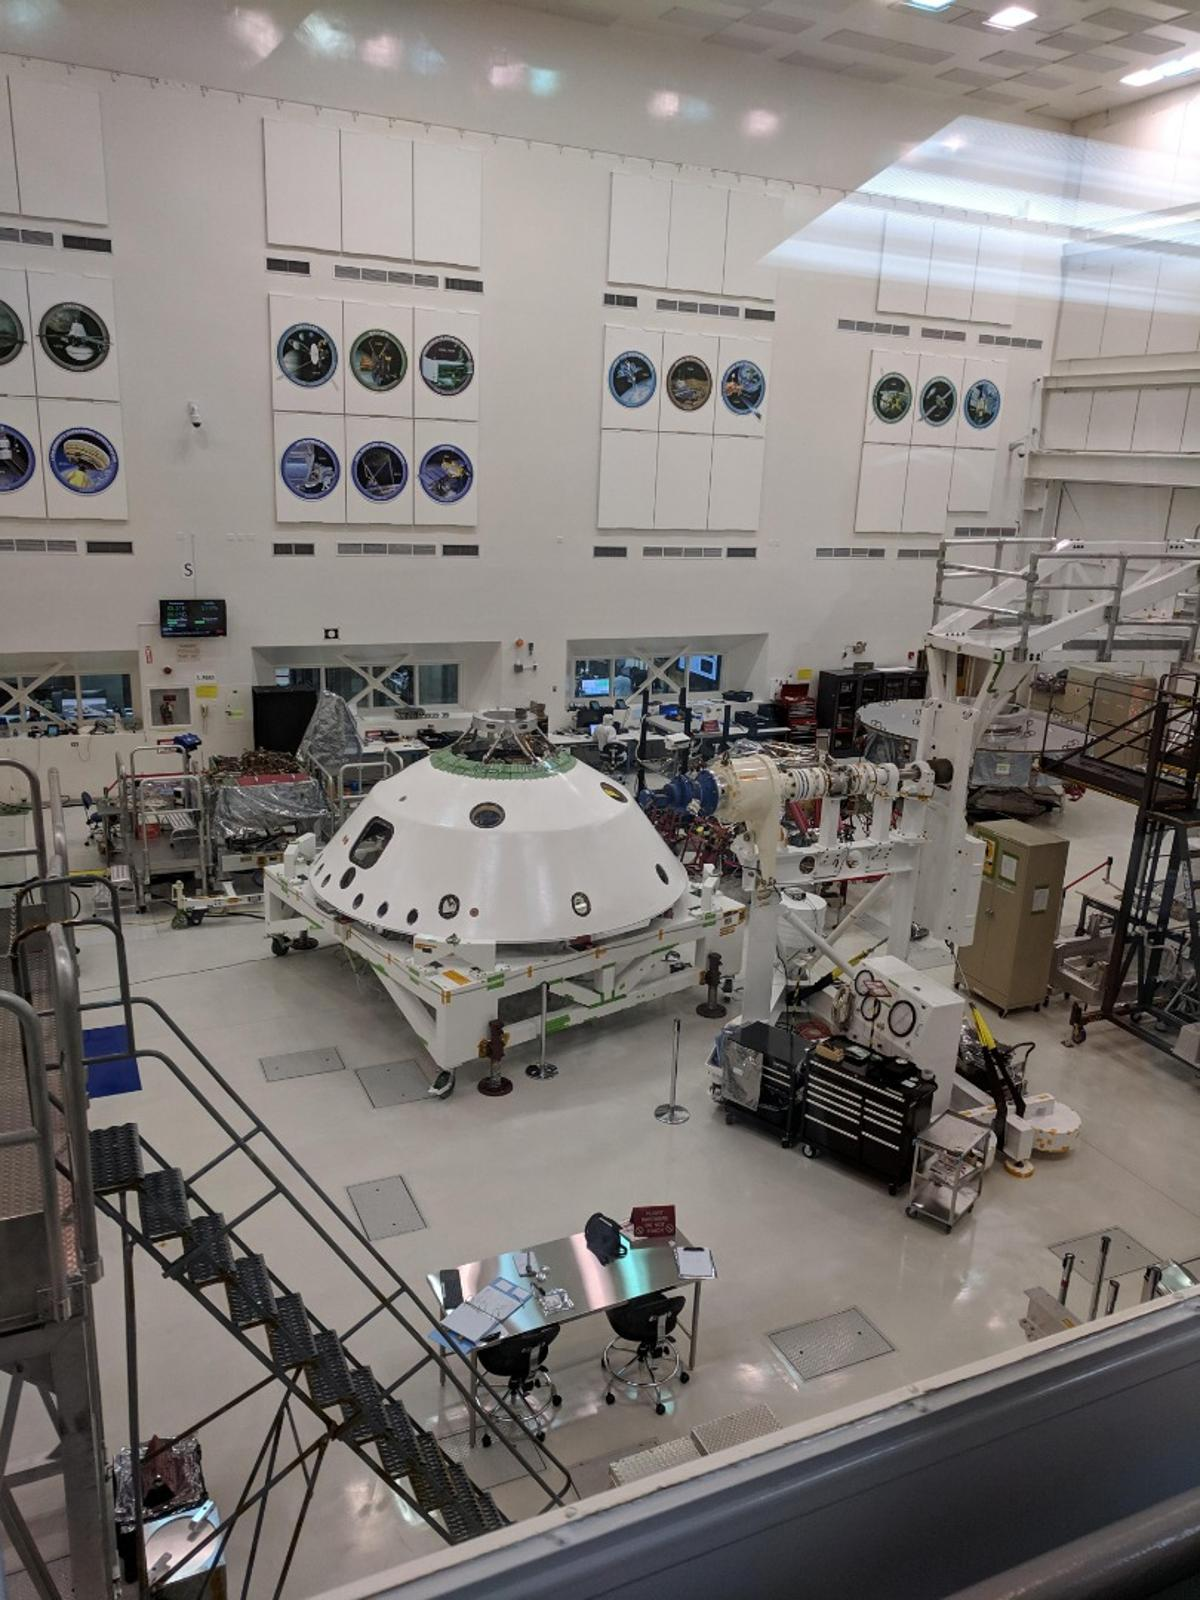 TheMars 2020 lander in the clean room at NASA's Jet Propulsion Laboratory